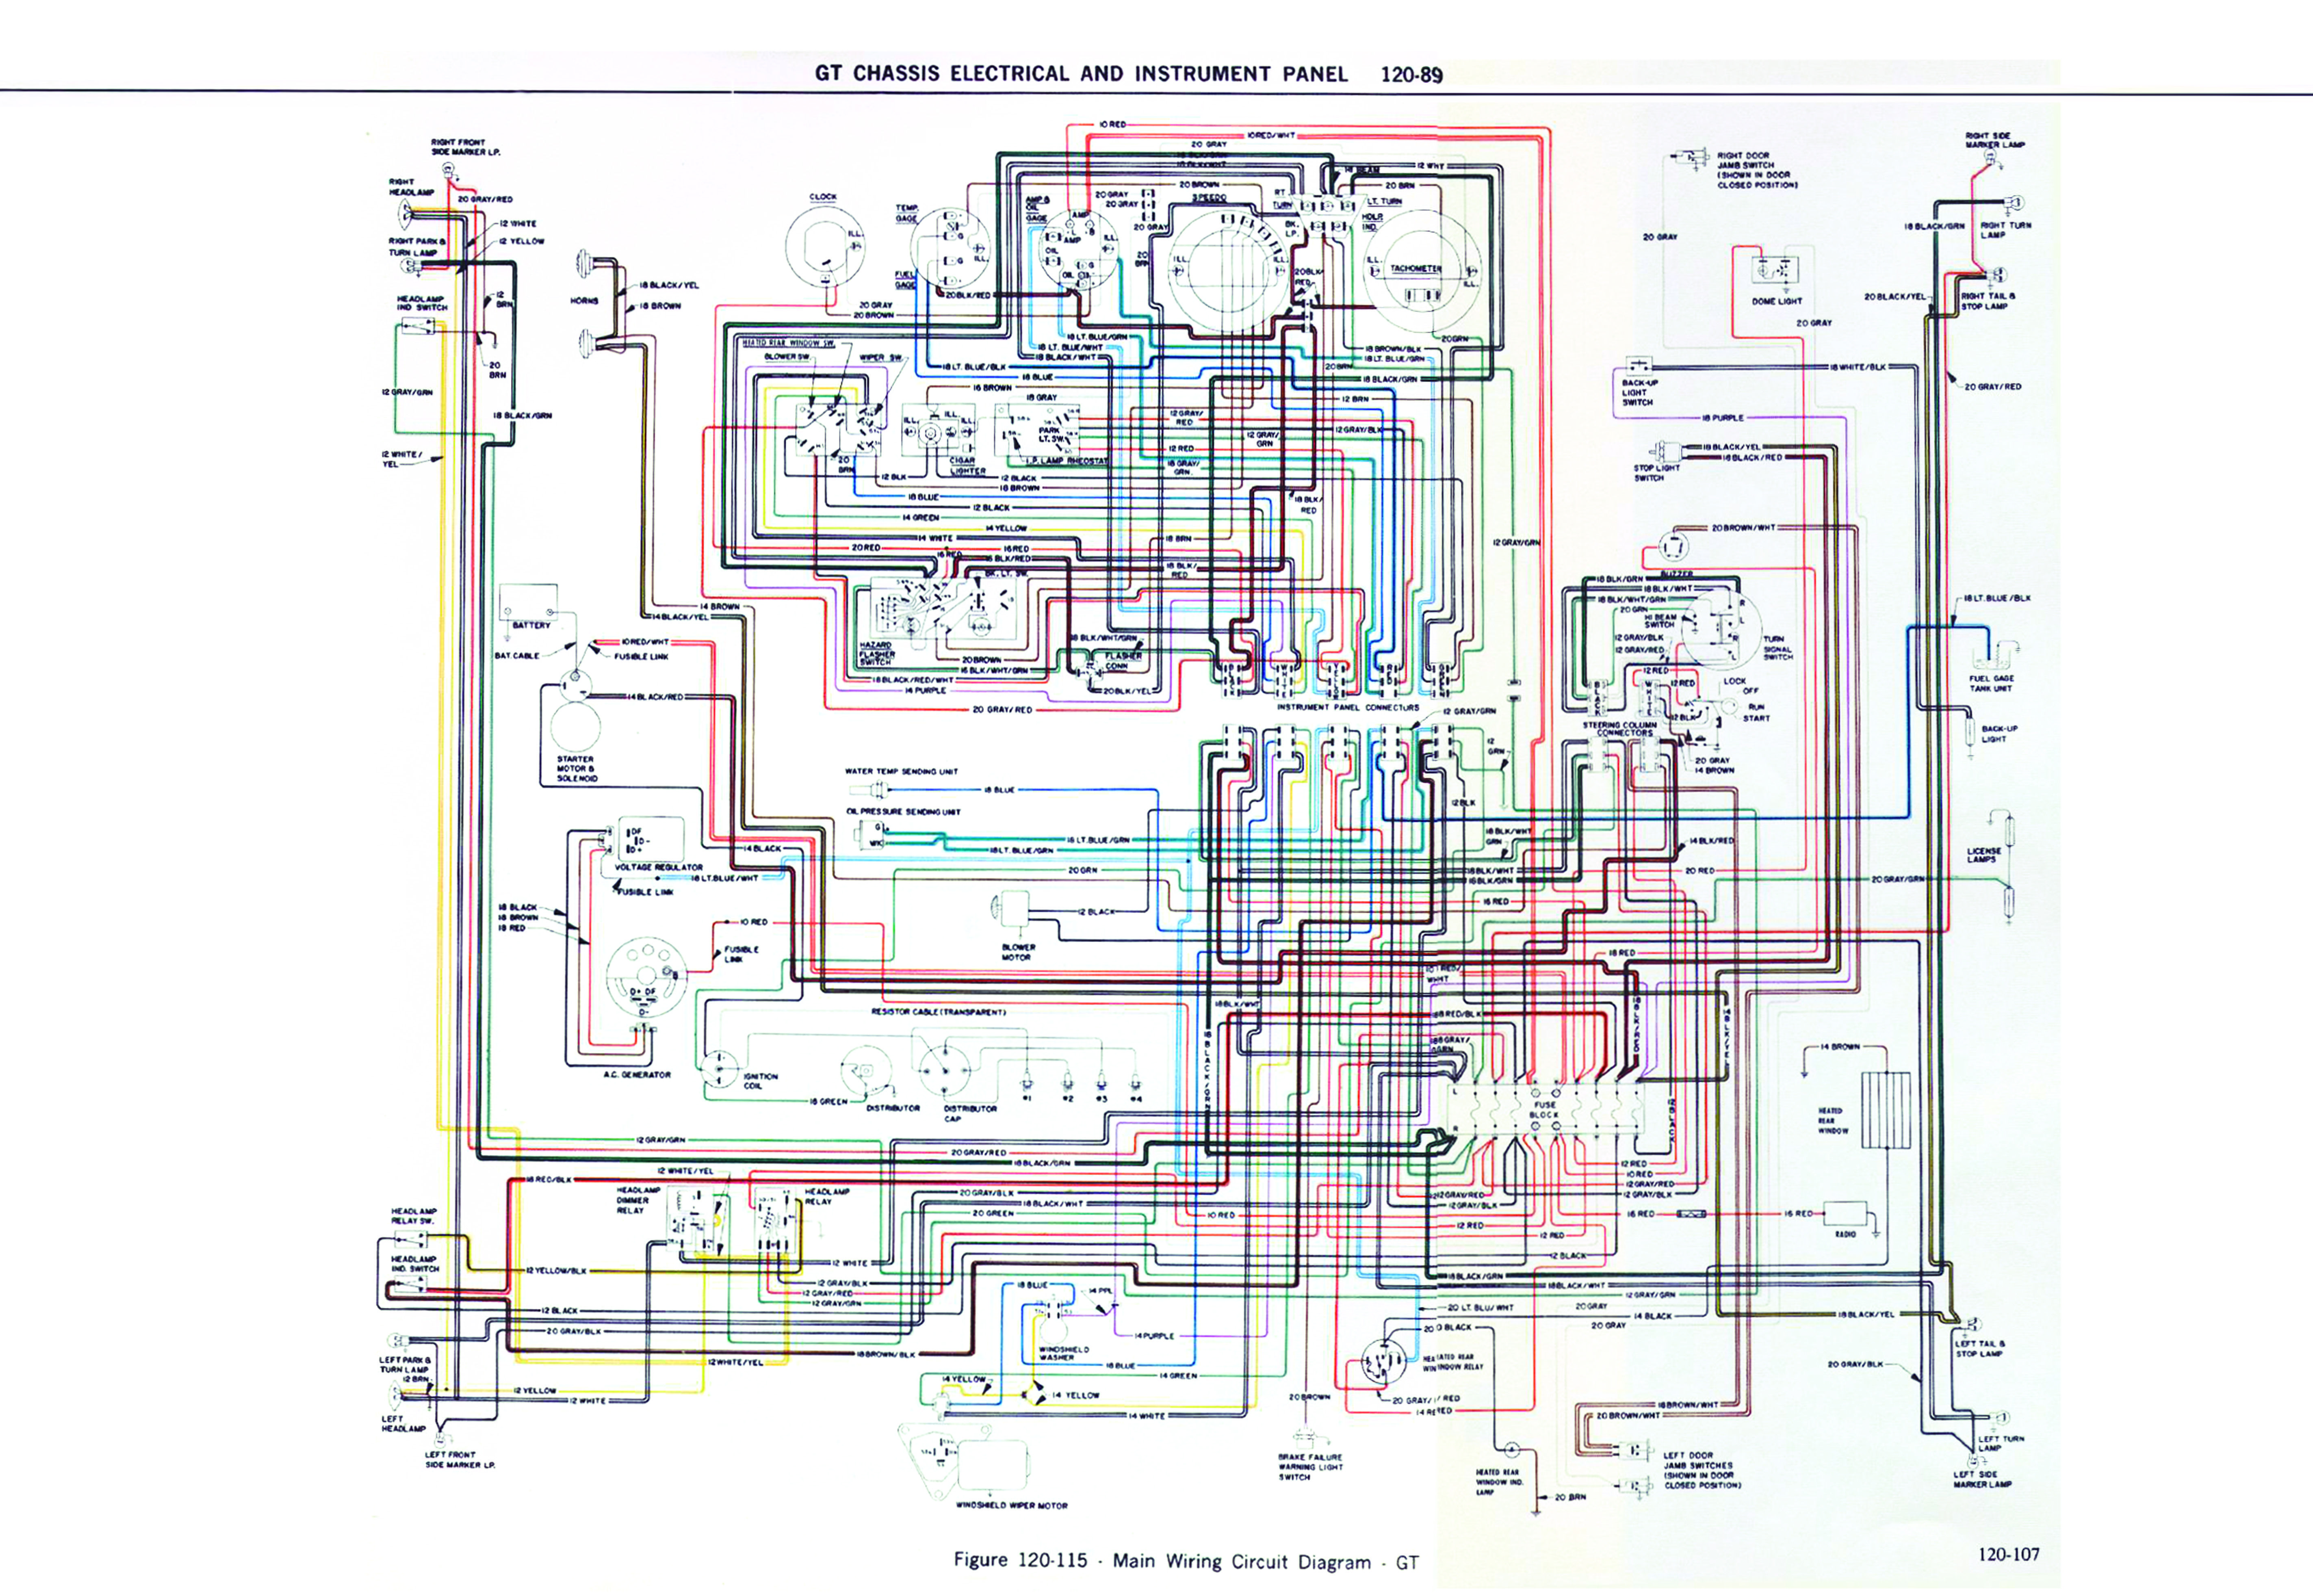 OPEL GT 1900 DIAGRAM CHASIS ELETRICAL AND INSTRUMENT PANEL